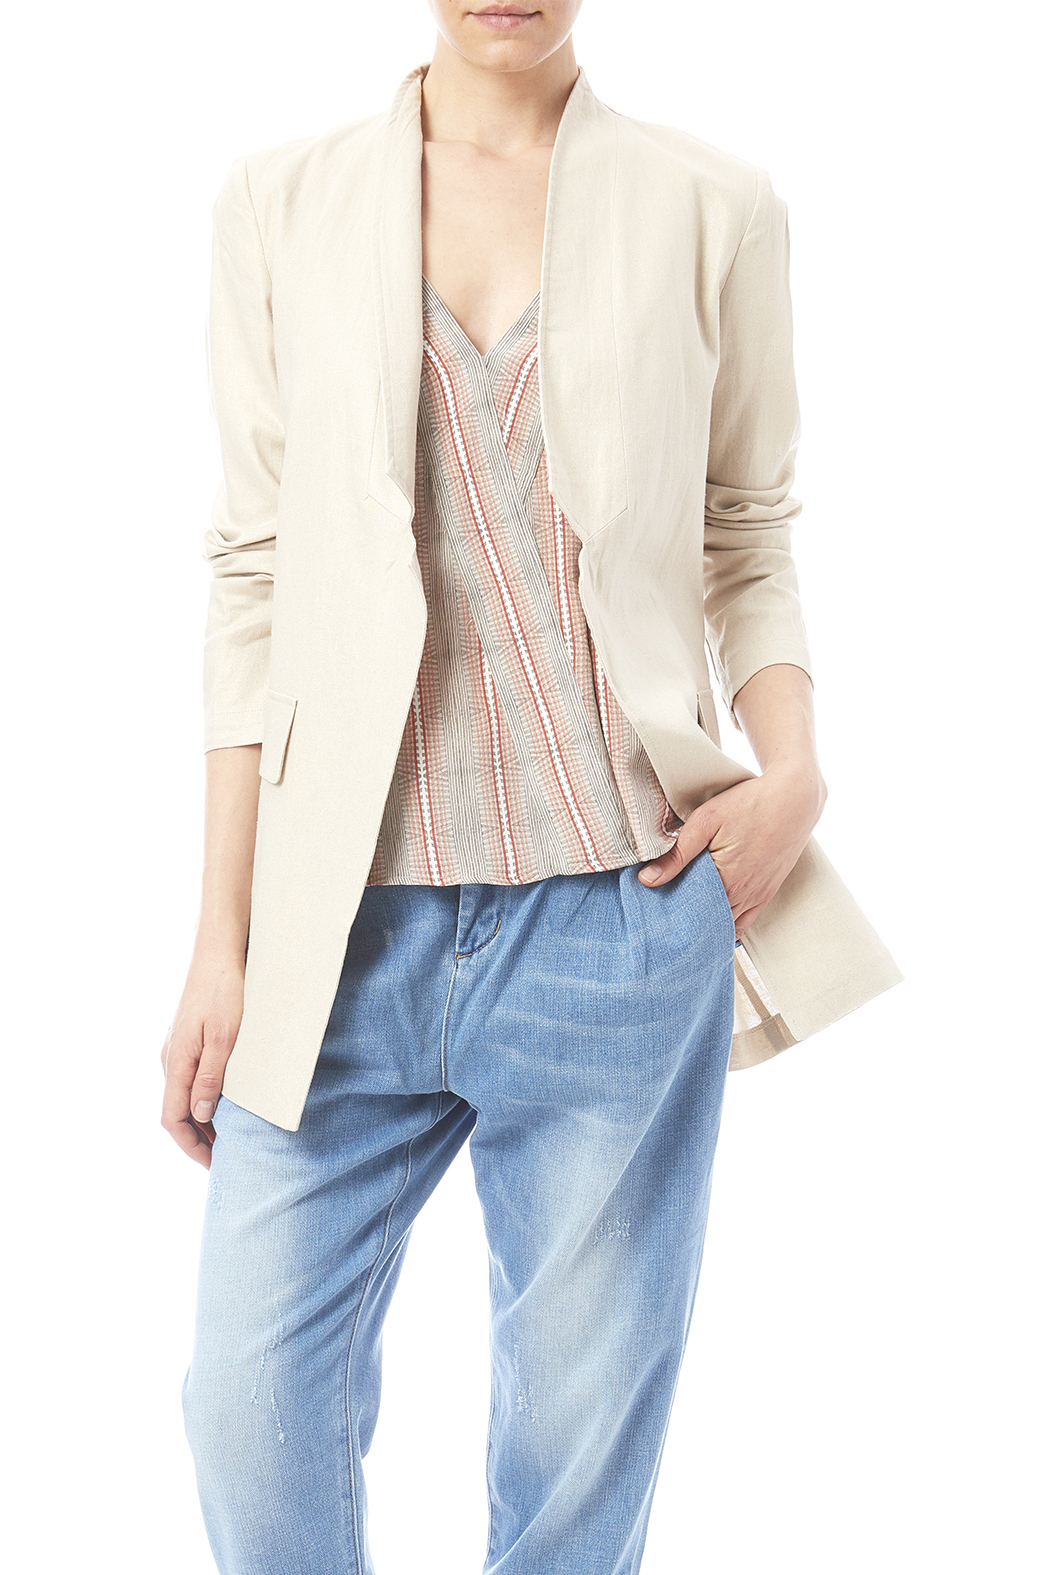 Katherine Barclay Metallic Linen Jacket - Main Image